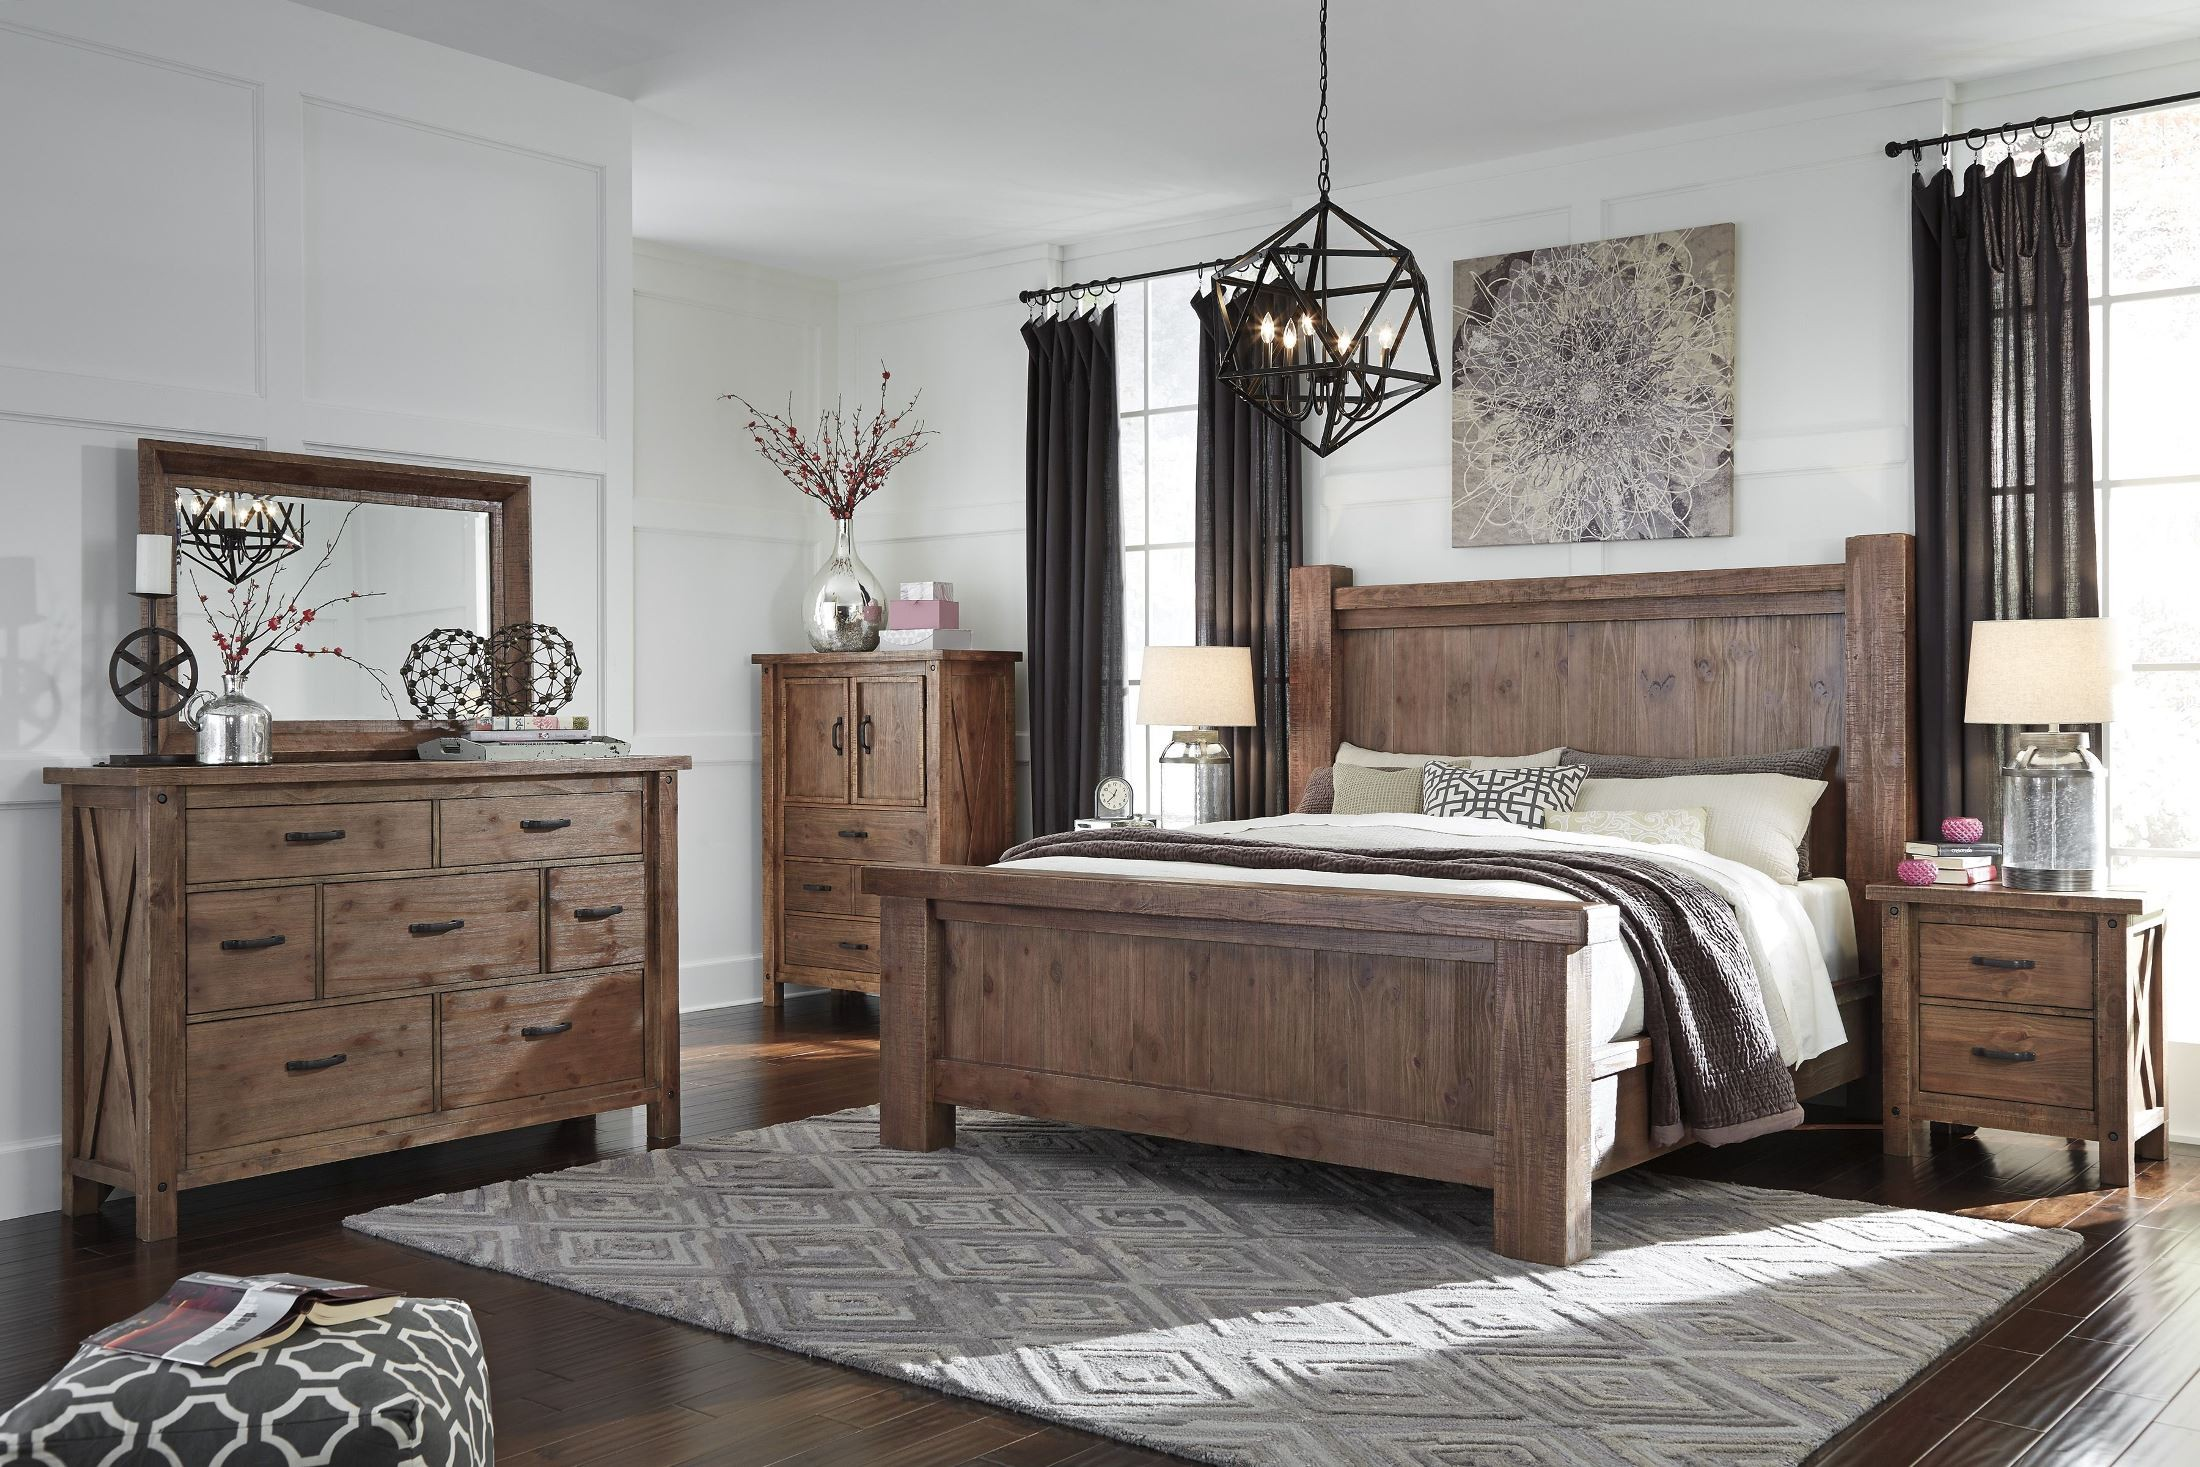 Tamilo Grayish Brown Cal King Poster Bed From Ashley B714 66 68 95 Coleman Furniture